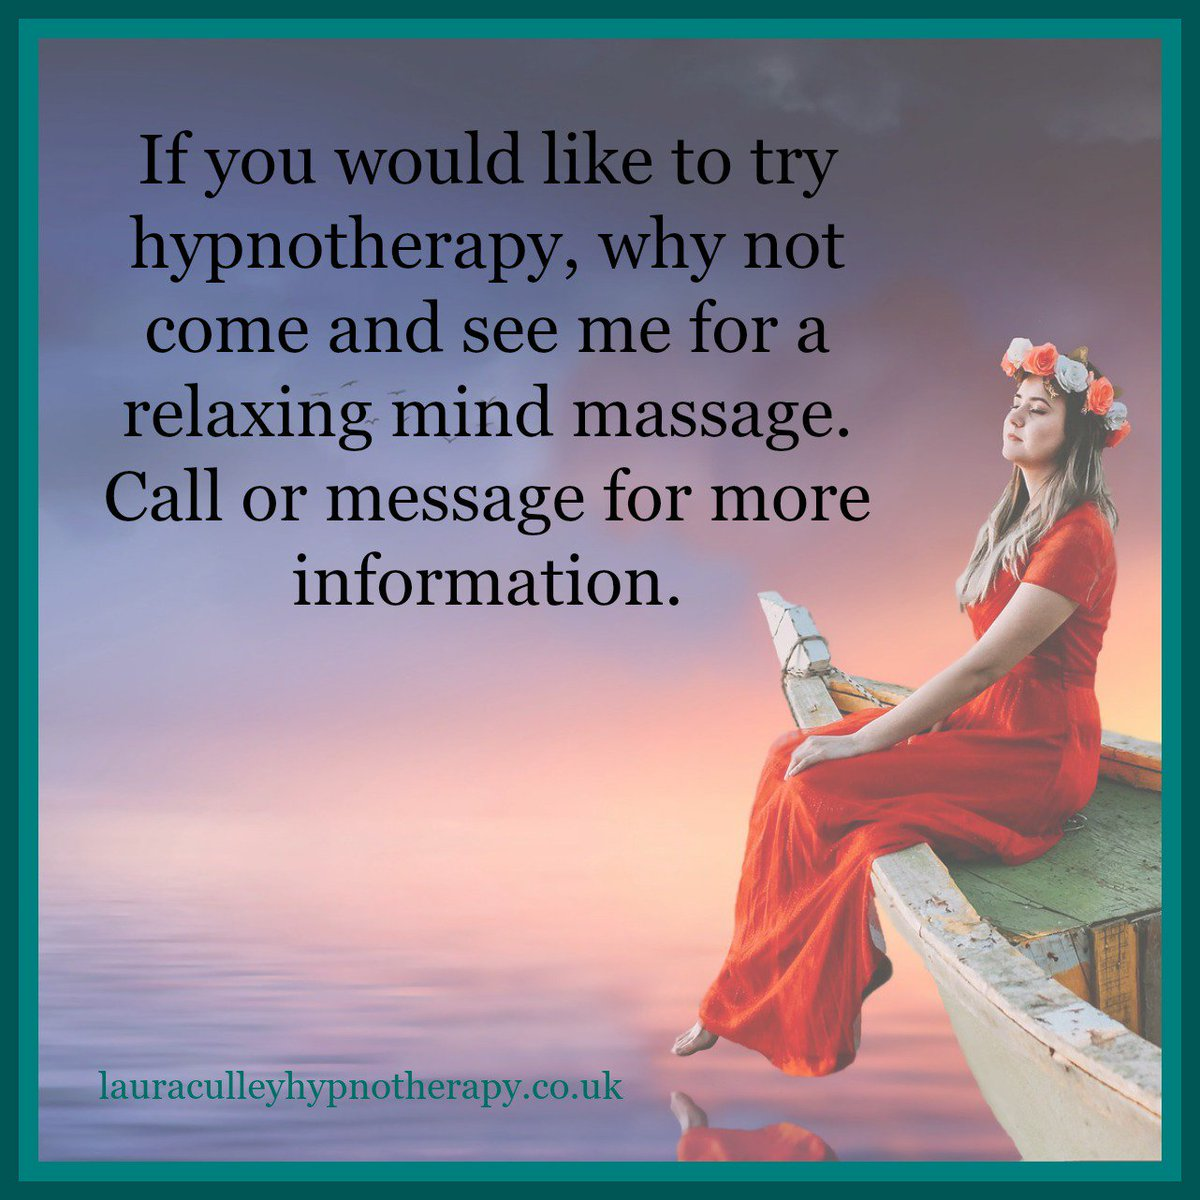 Erotic hypnosis org uk